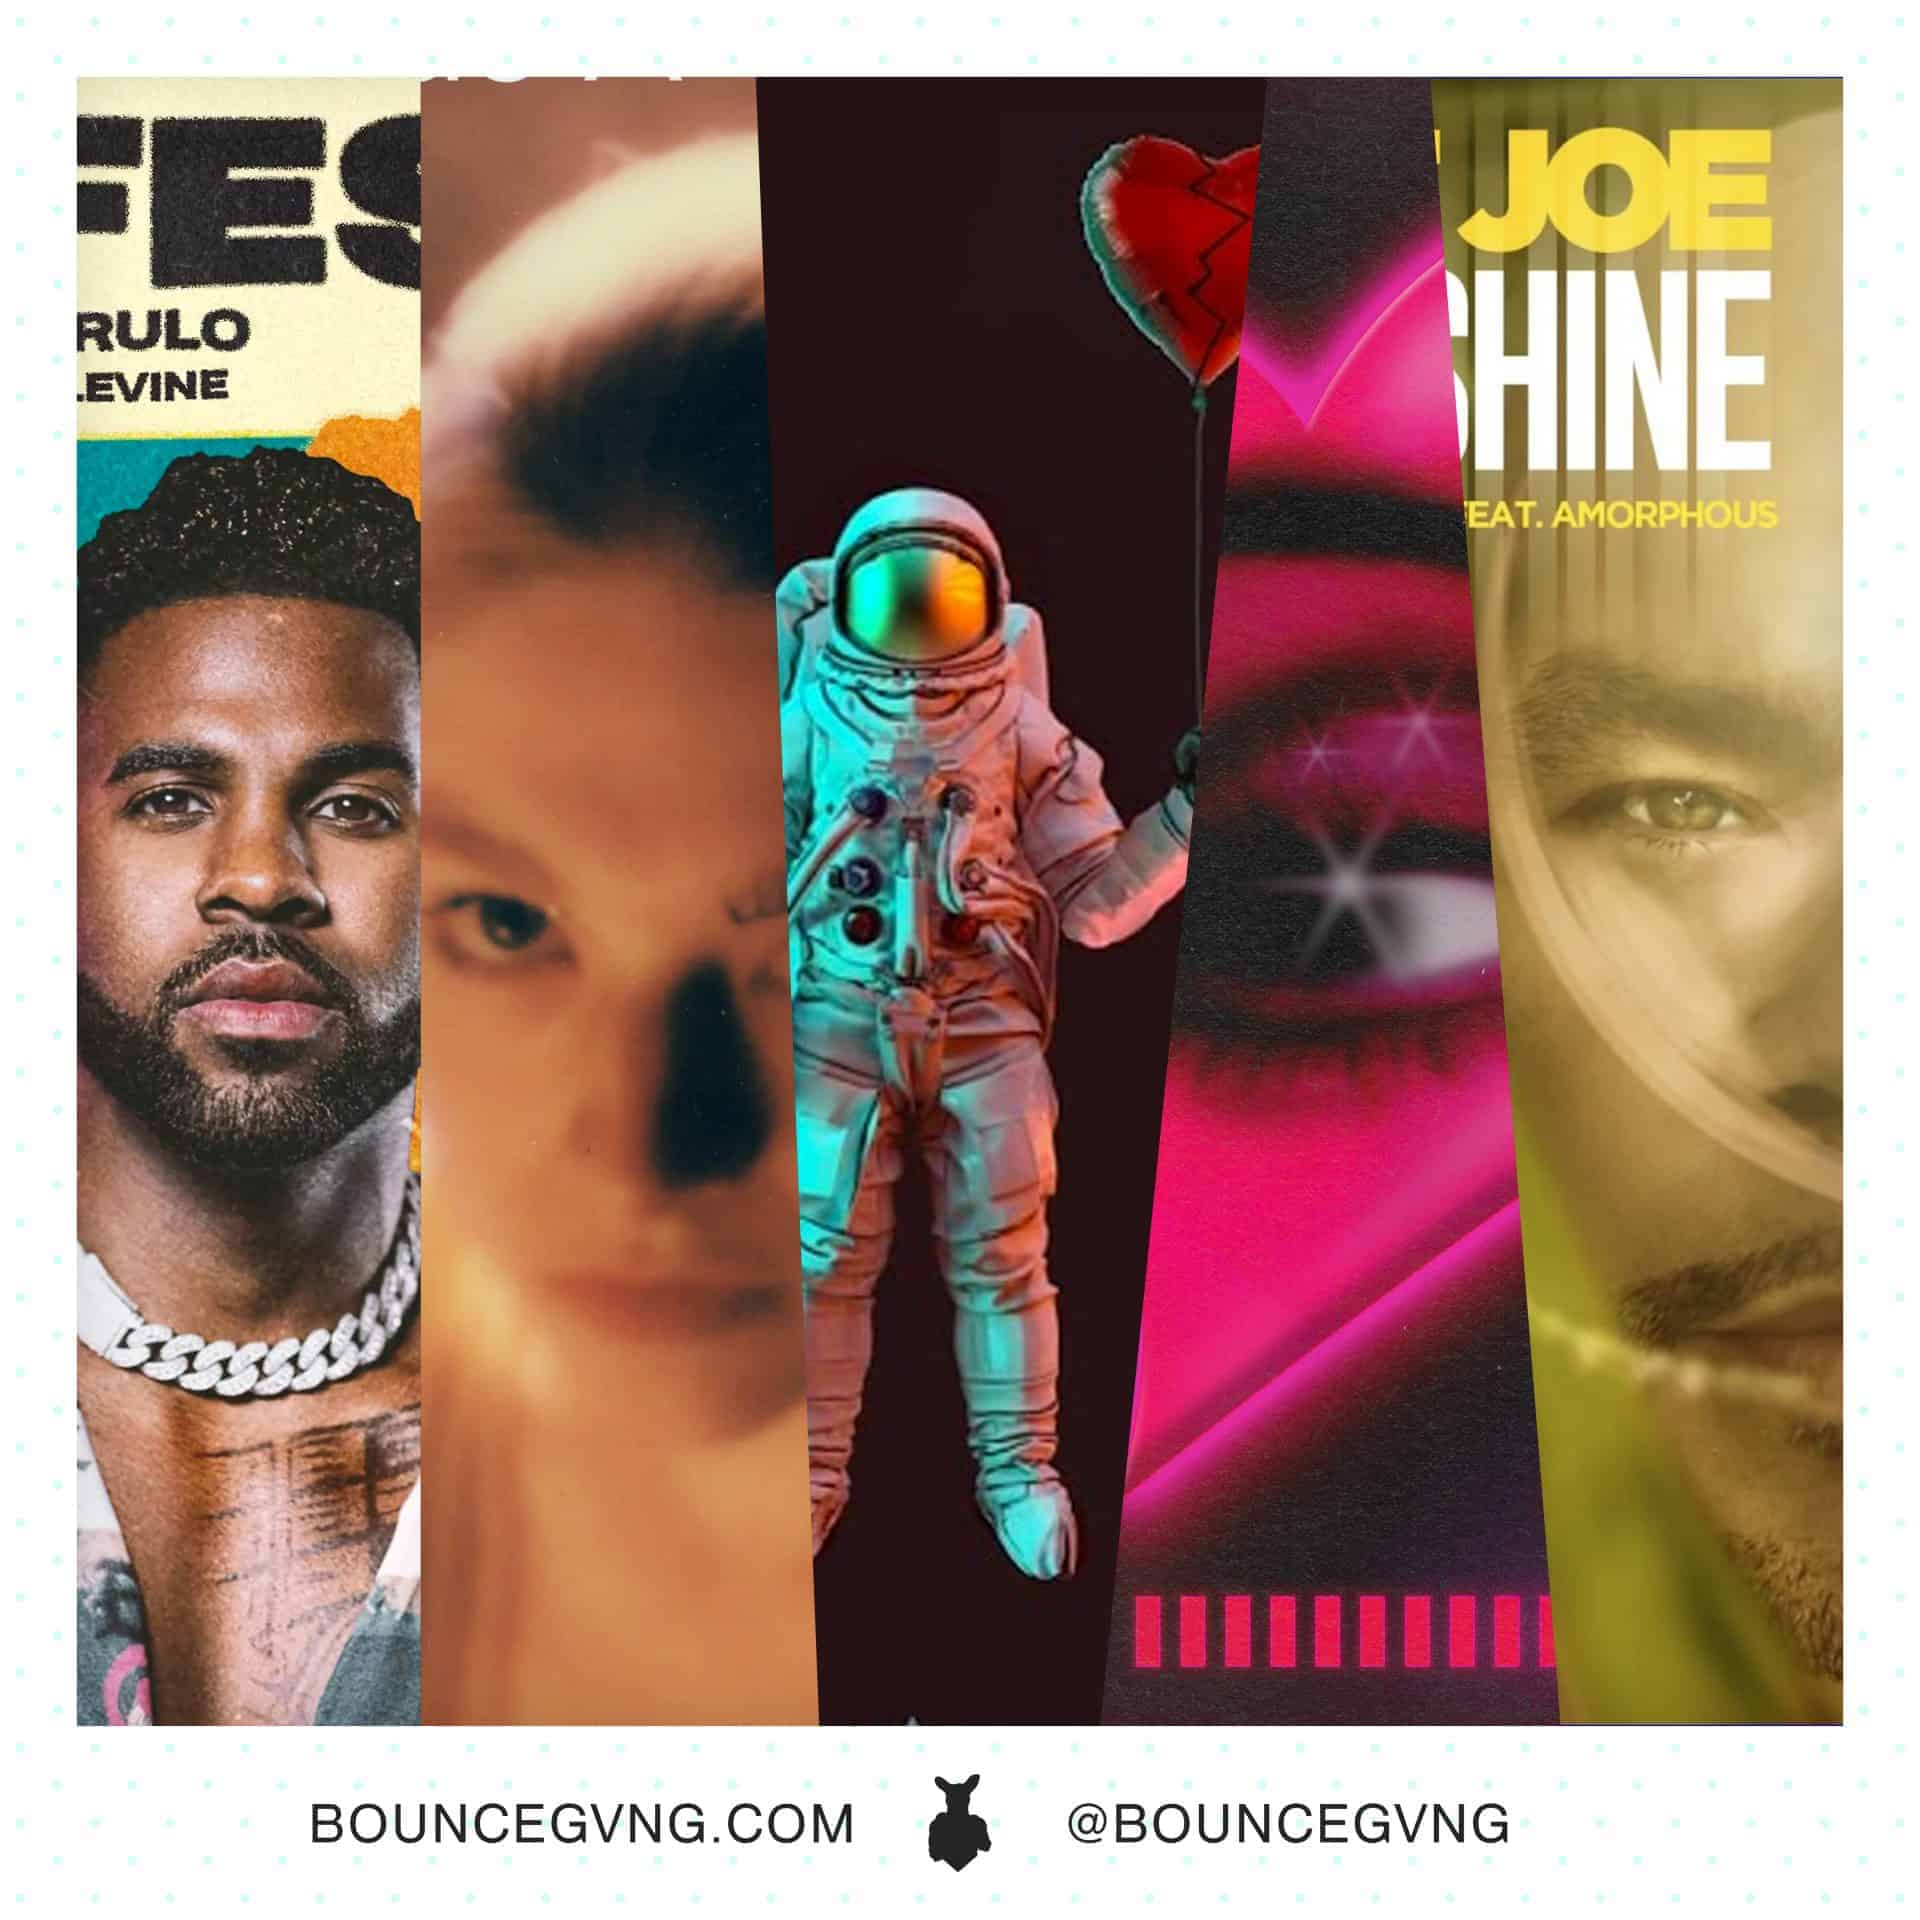 7 New Songs to Listen to this Weekend from Jason Derulo, Billie Eilish, DJ Khaled, and more Bounce Gvng